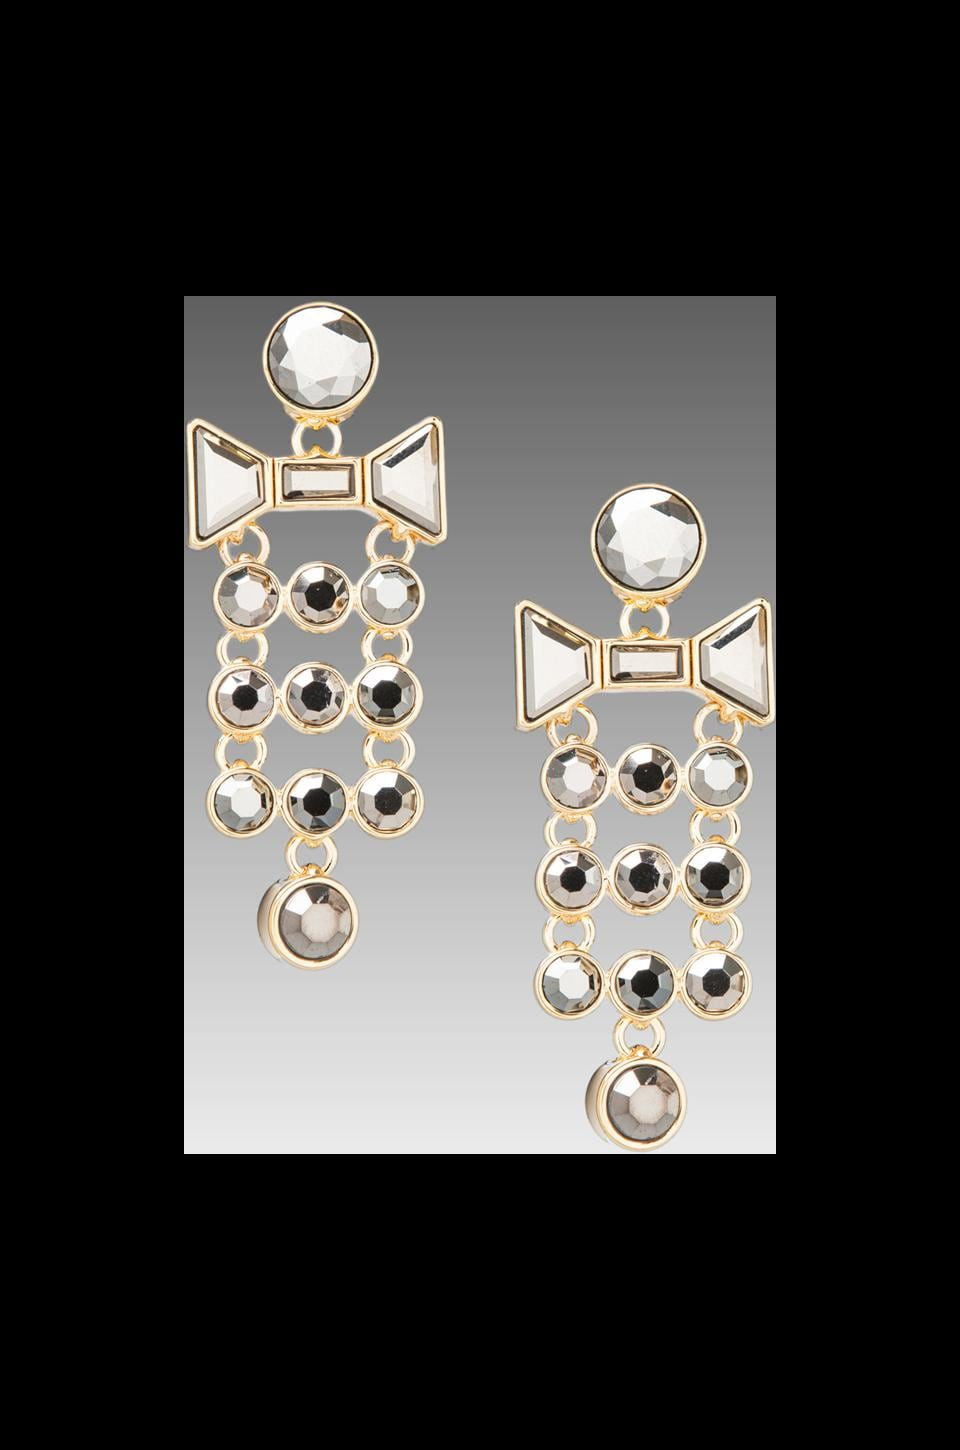 Marc by Marc Jacobs Polka Dot Tiered Bow Earrings in Silver Flare Oro